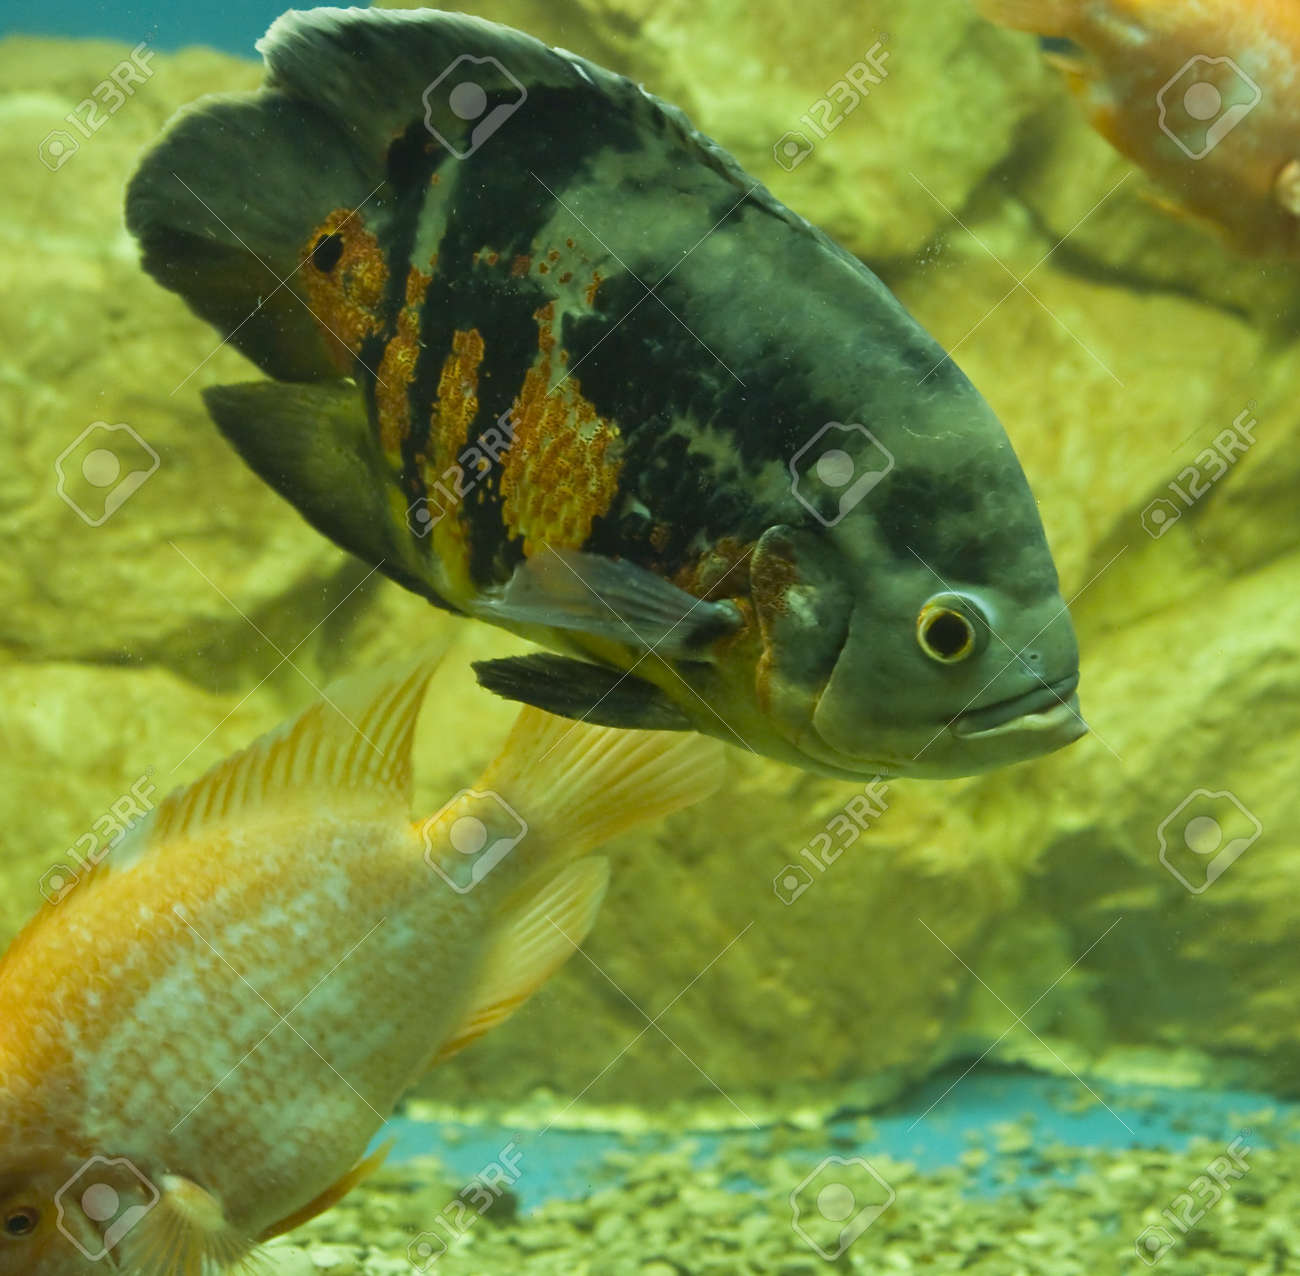 Tropical fish latin name Astronotus ocellatus, recorded in aquarium Stock Photo - 16162541